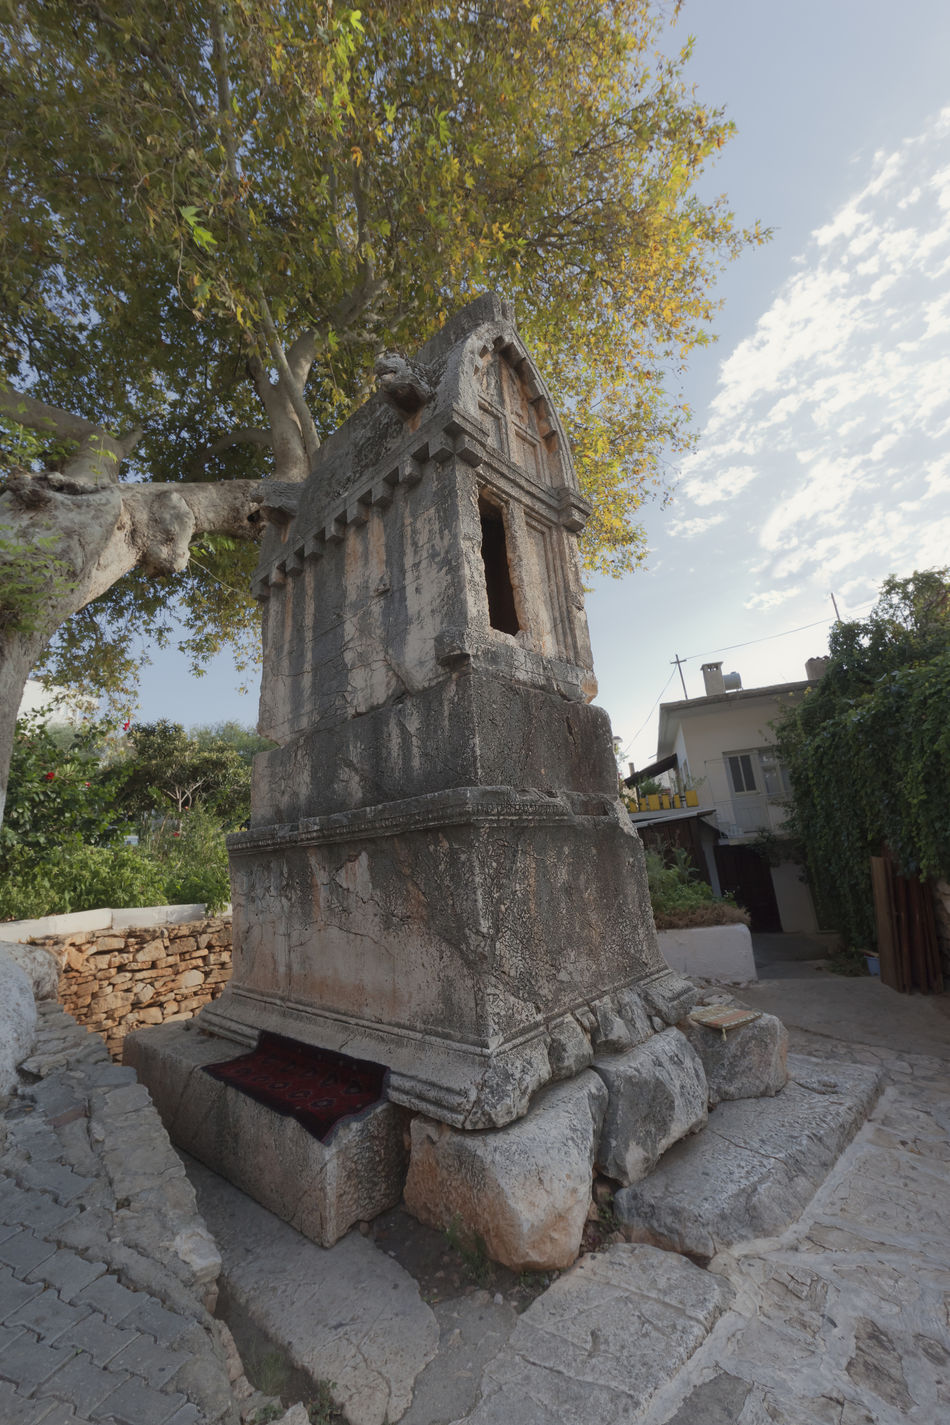 2400 years old lycian tomb in Kas - Kas, Antalya Province, Turkey, Asia Anatolia Ancient Ancient Civilization Antalya Burial Death Grave Graveyard Kas Lycia Maple Tree Memories No People Place Of Worship Religion Sarcophagus Sepulcher Spirituality The End The Past Tomb Tombstone Tradition Tree Turkey